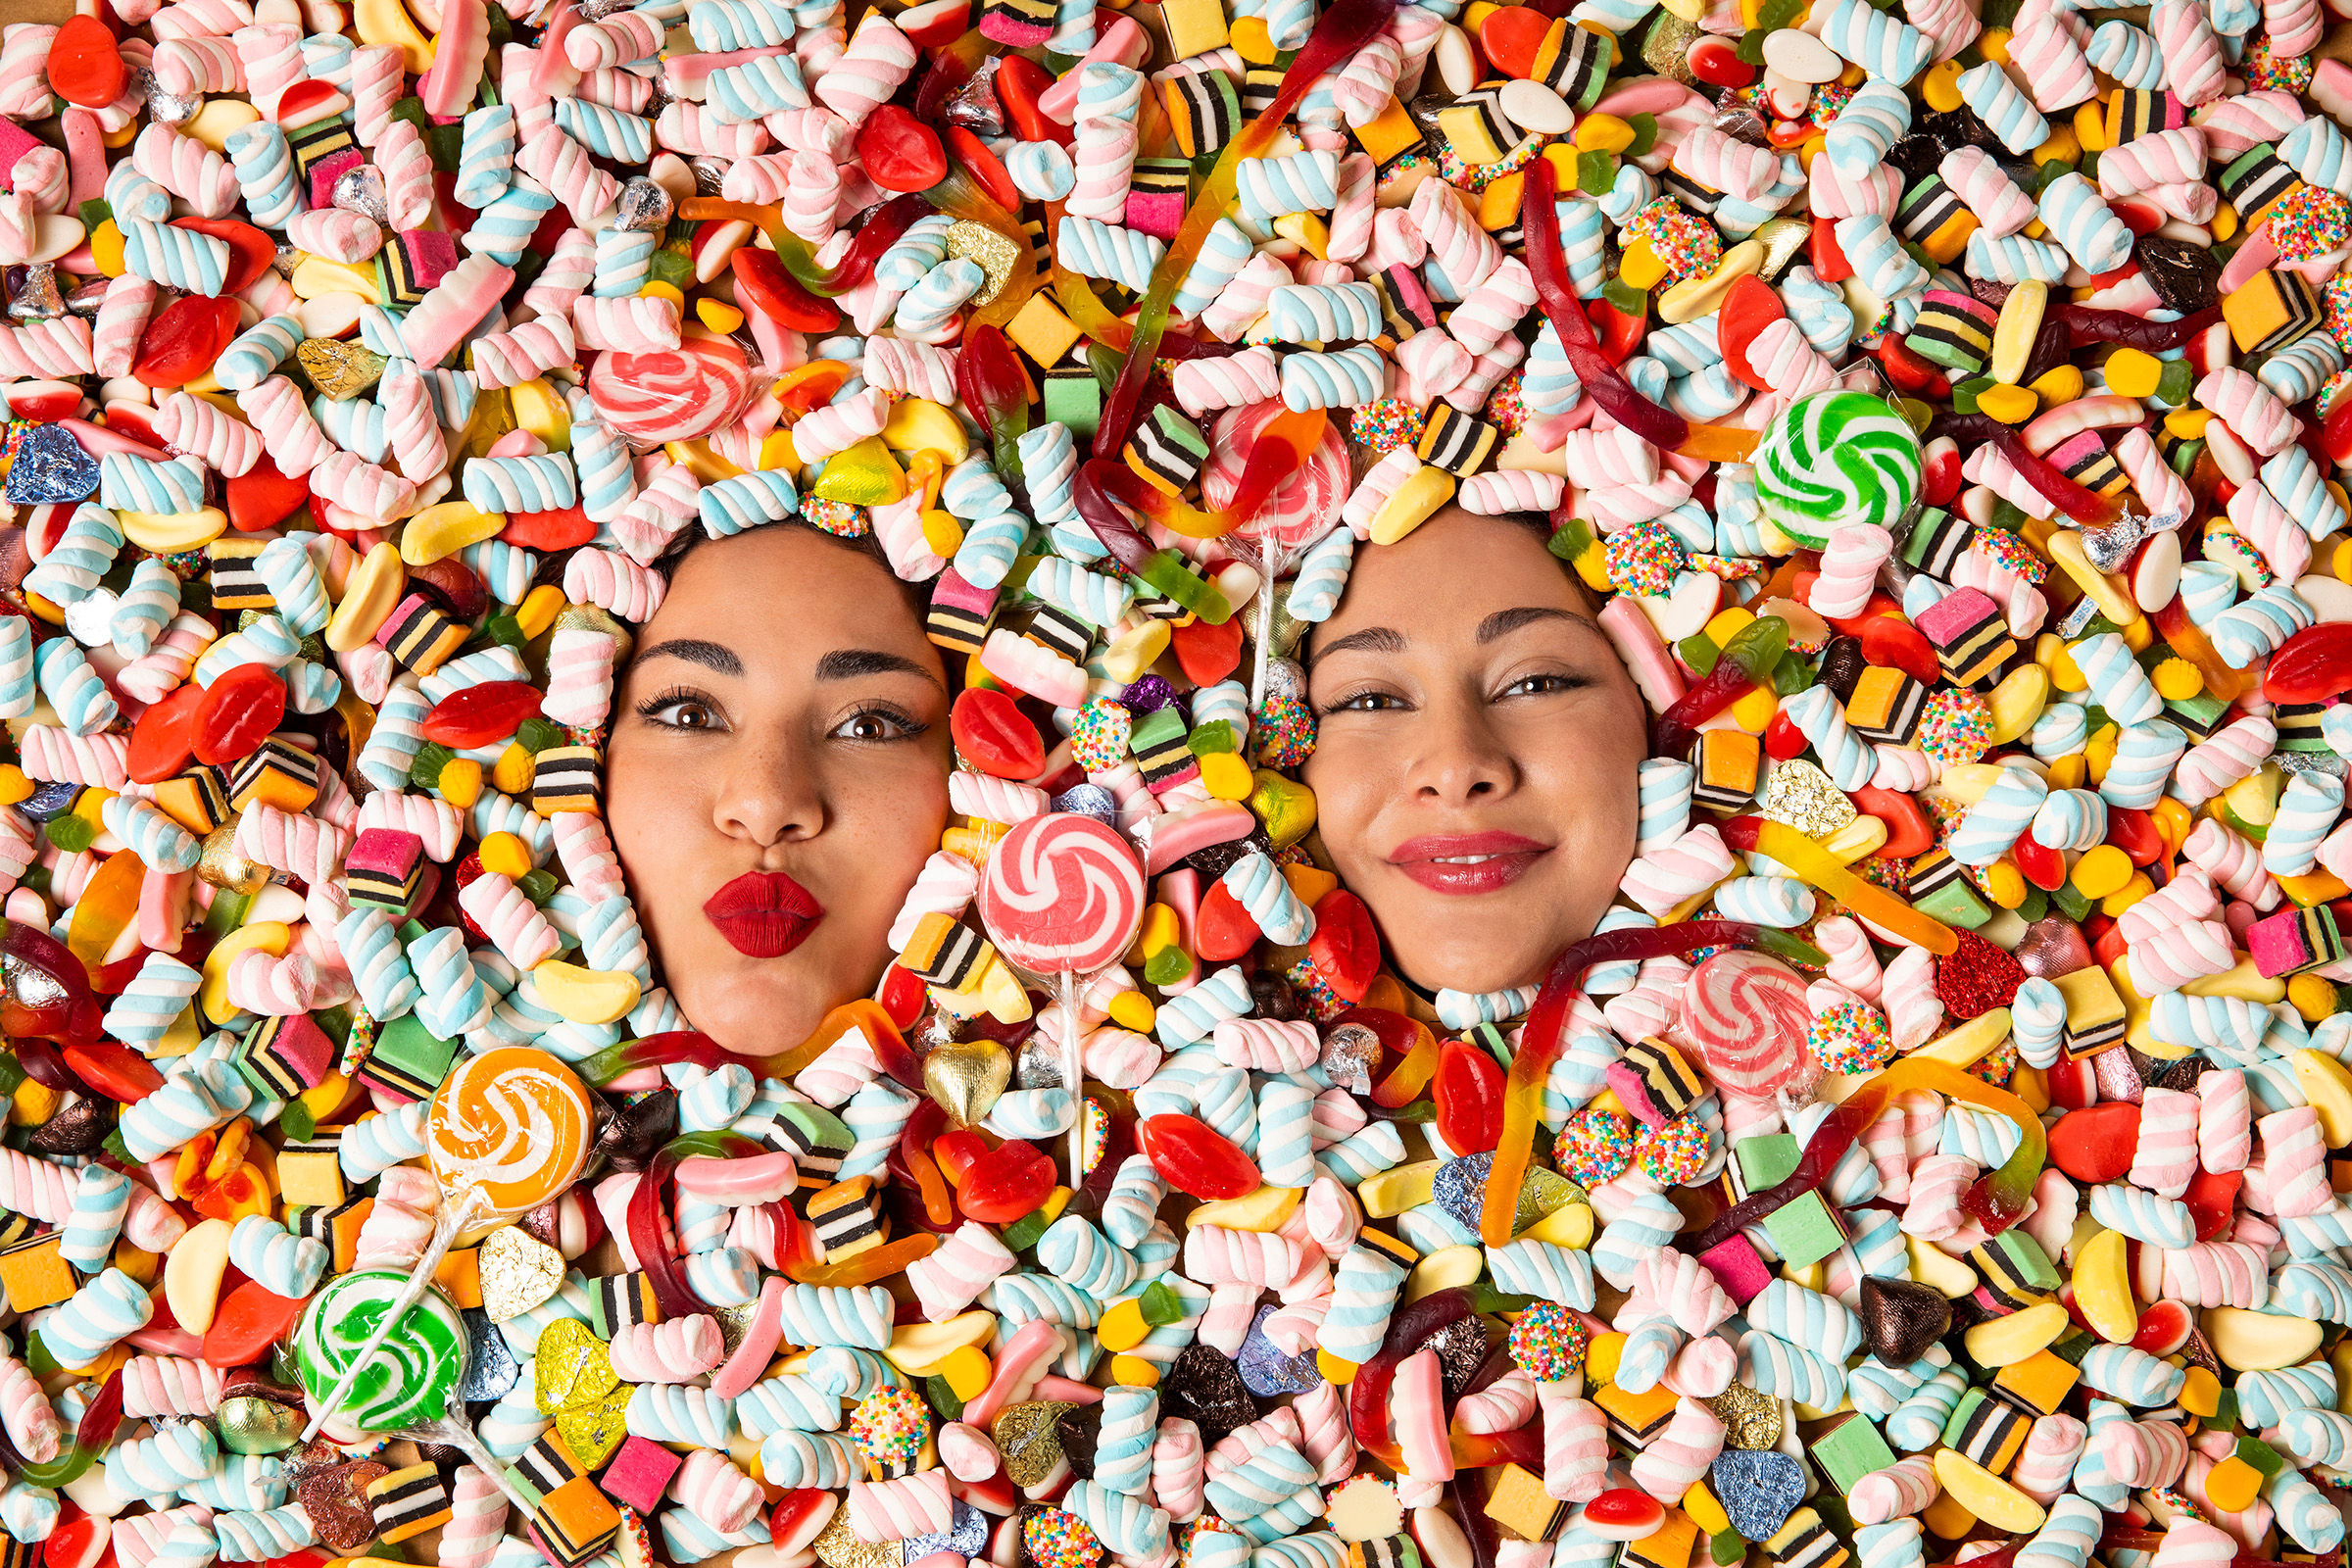 Editorial studio photography of the 2 Lick Your Phone founders covered in lollies